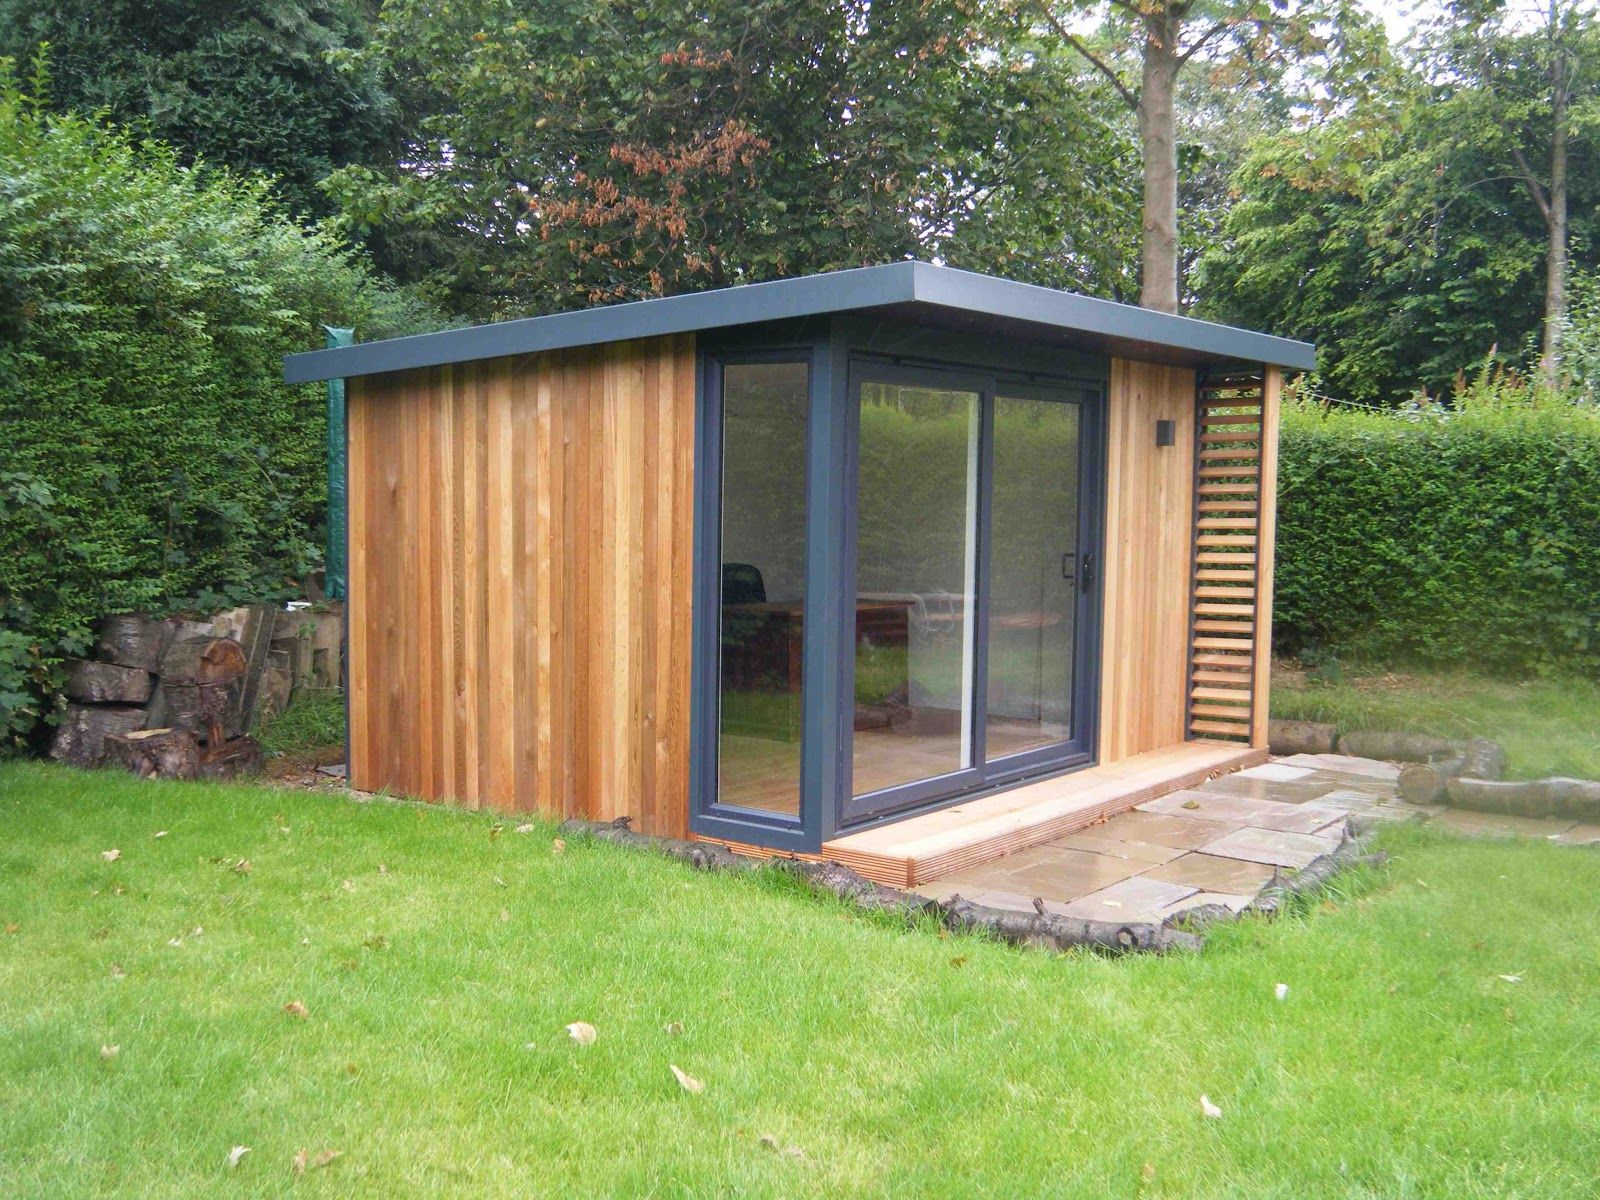 garden office designs. Shed Office Designs George Clarkes Amazing Spaces Curved Wooden Garden 2017 And Images T